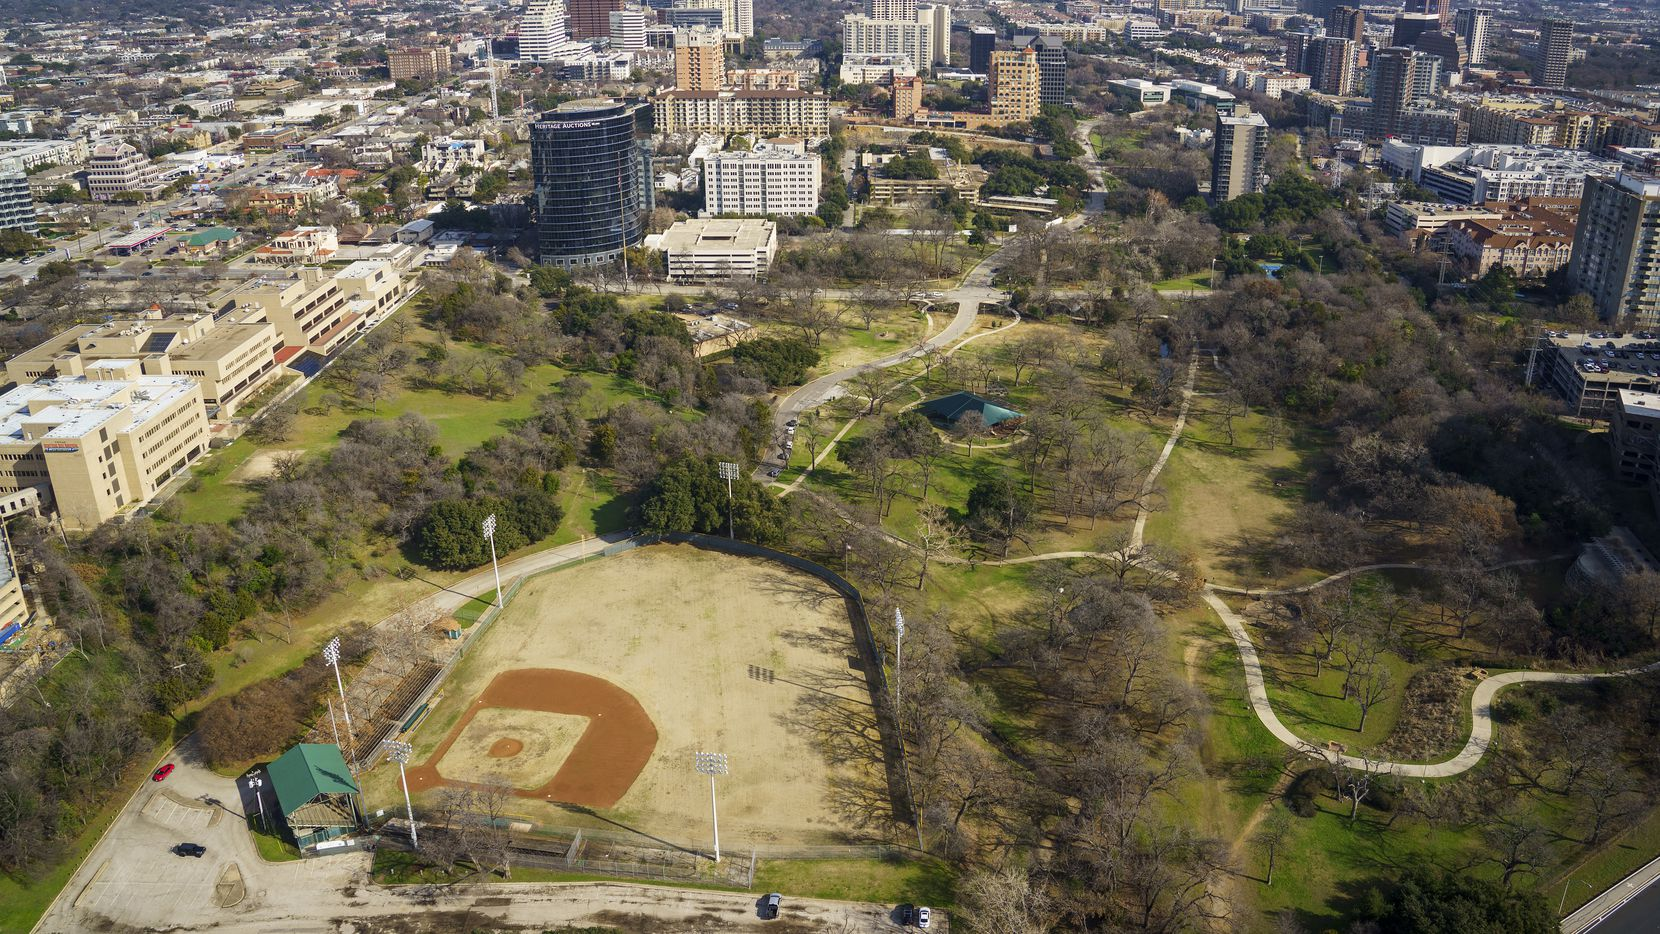 An aerial view from January of Reverchon Park and its century-old baseball field. The Dallas City Council will vote Oct. 28 to rescind the Donnie Nelson-led effort to rebuild and operate the ballfield after the group missed an extended fundraising deadline.